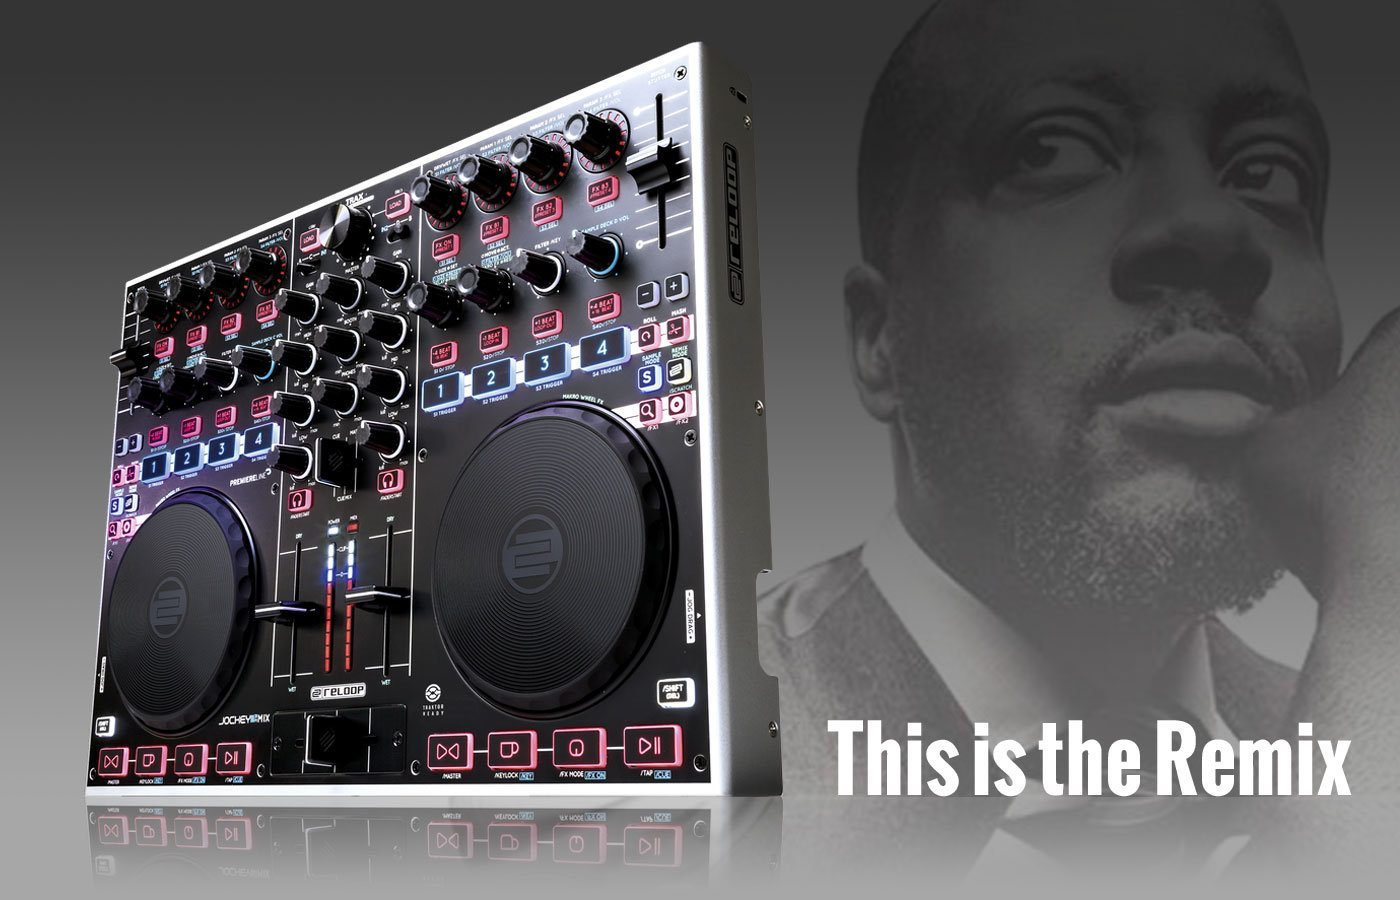 Reloop Jockey 3 — this is the Remix 3